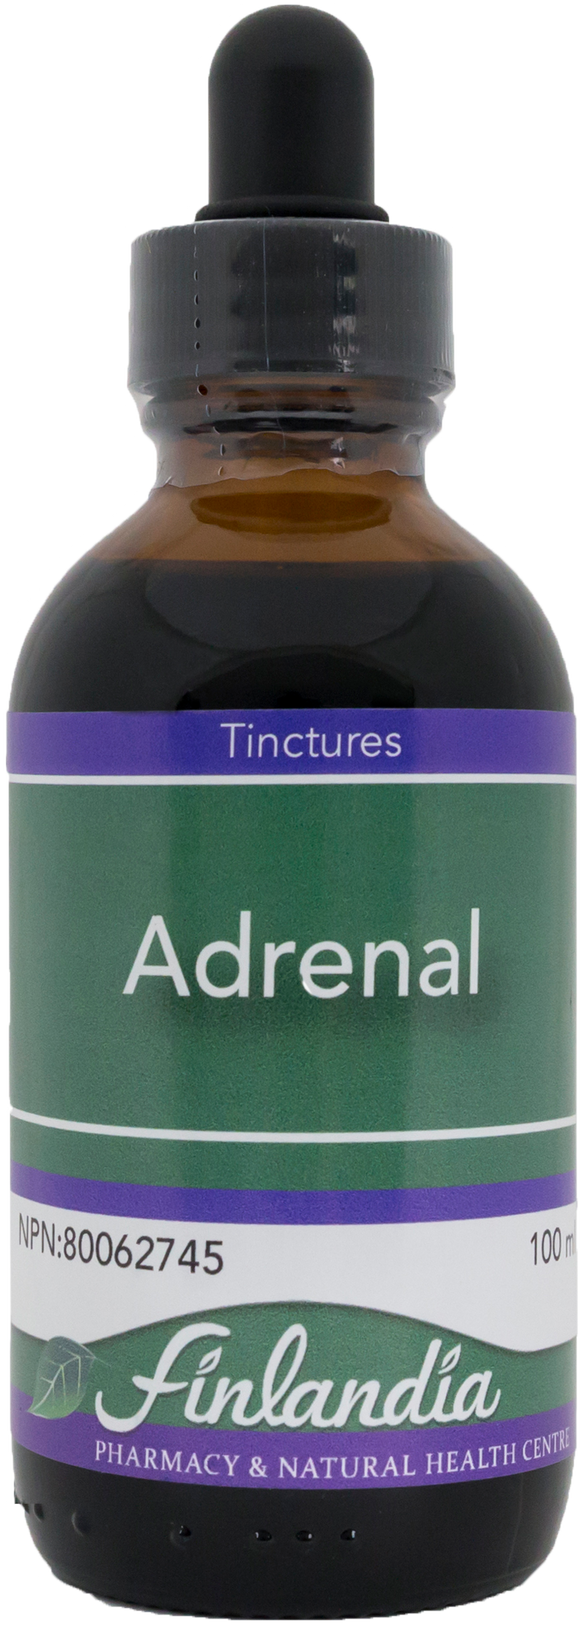 Adrenal Tincture